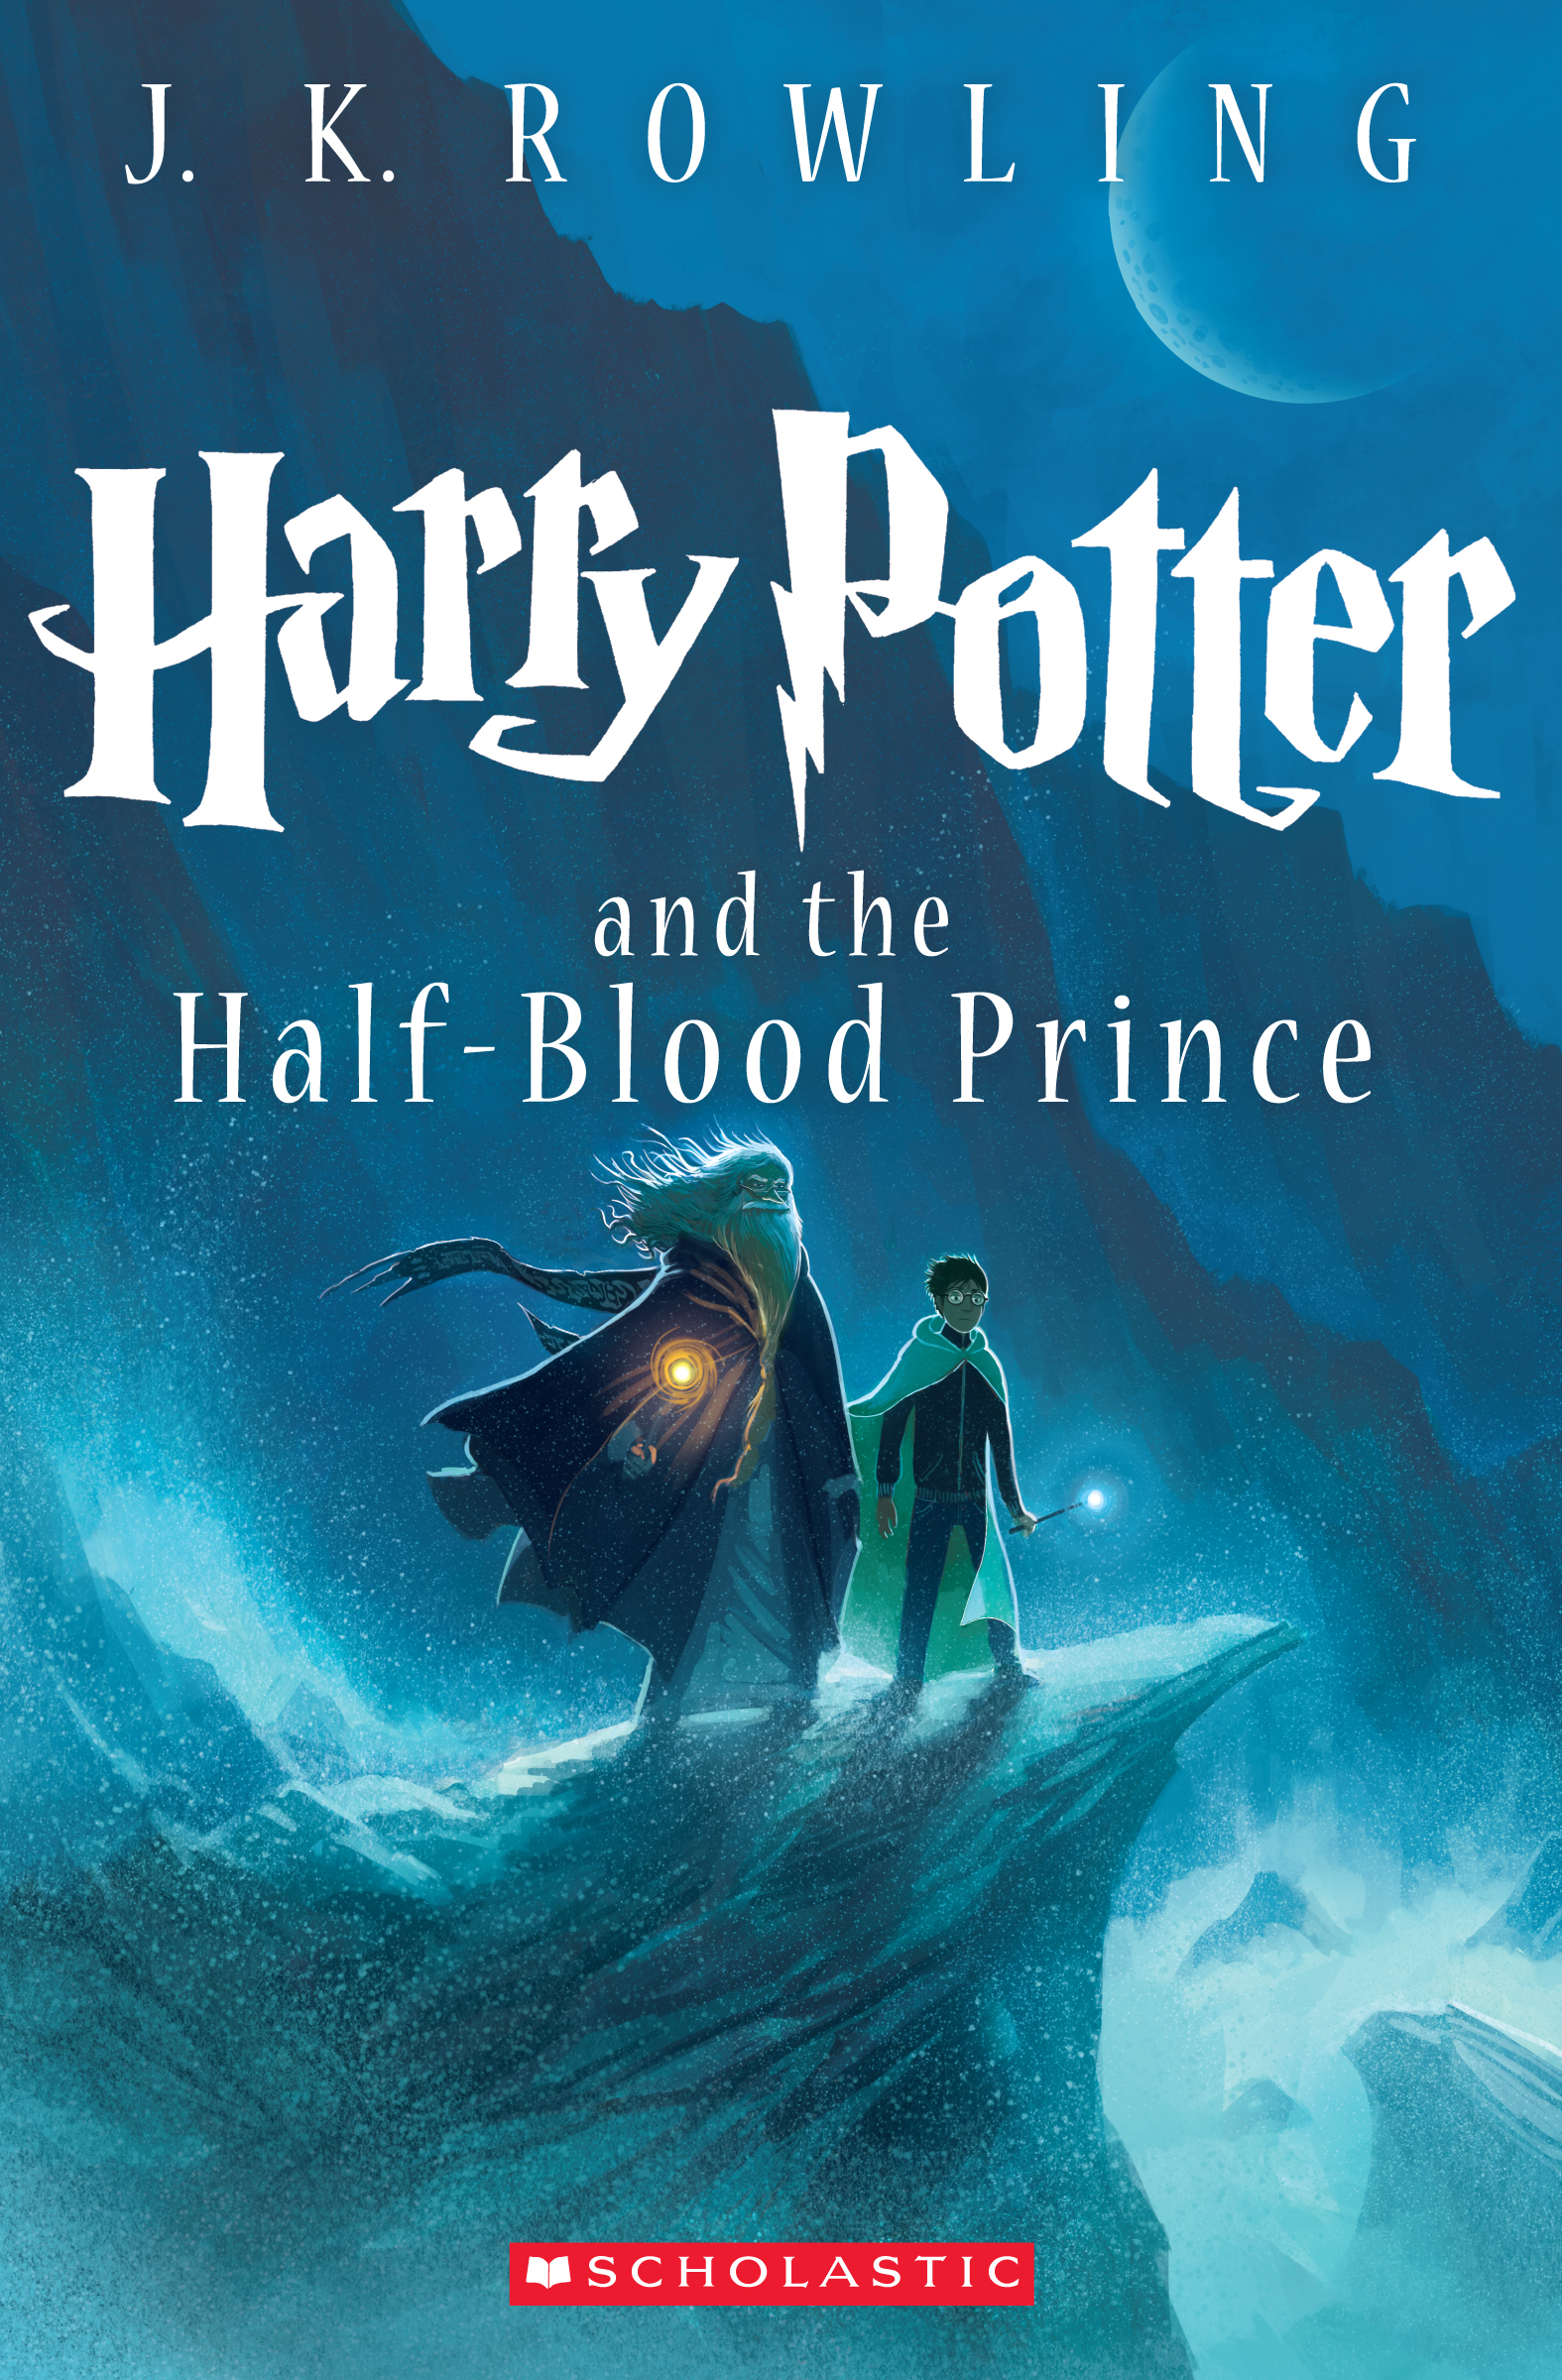 Harry Potter Book Is About : Harry potter scholastic media room